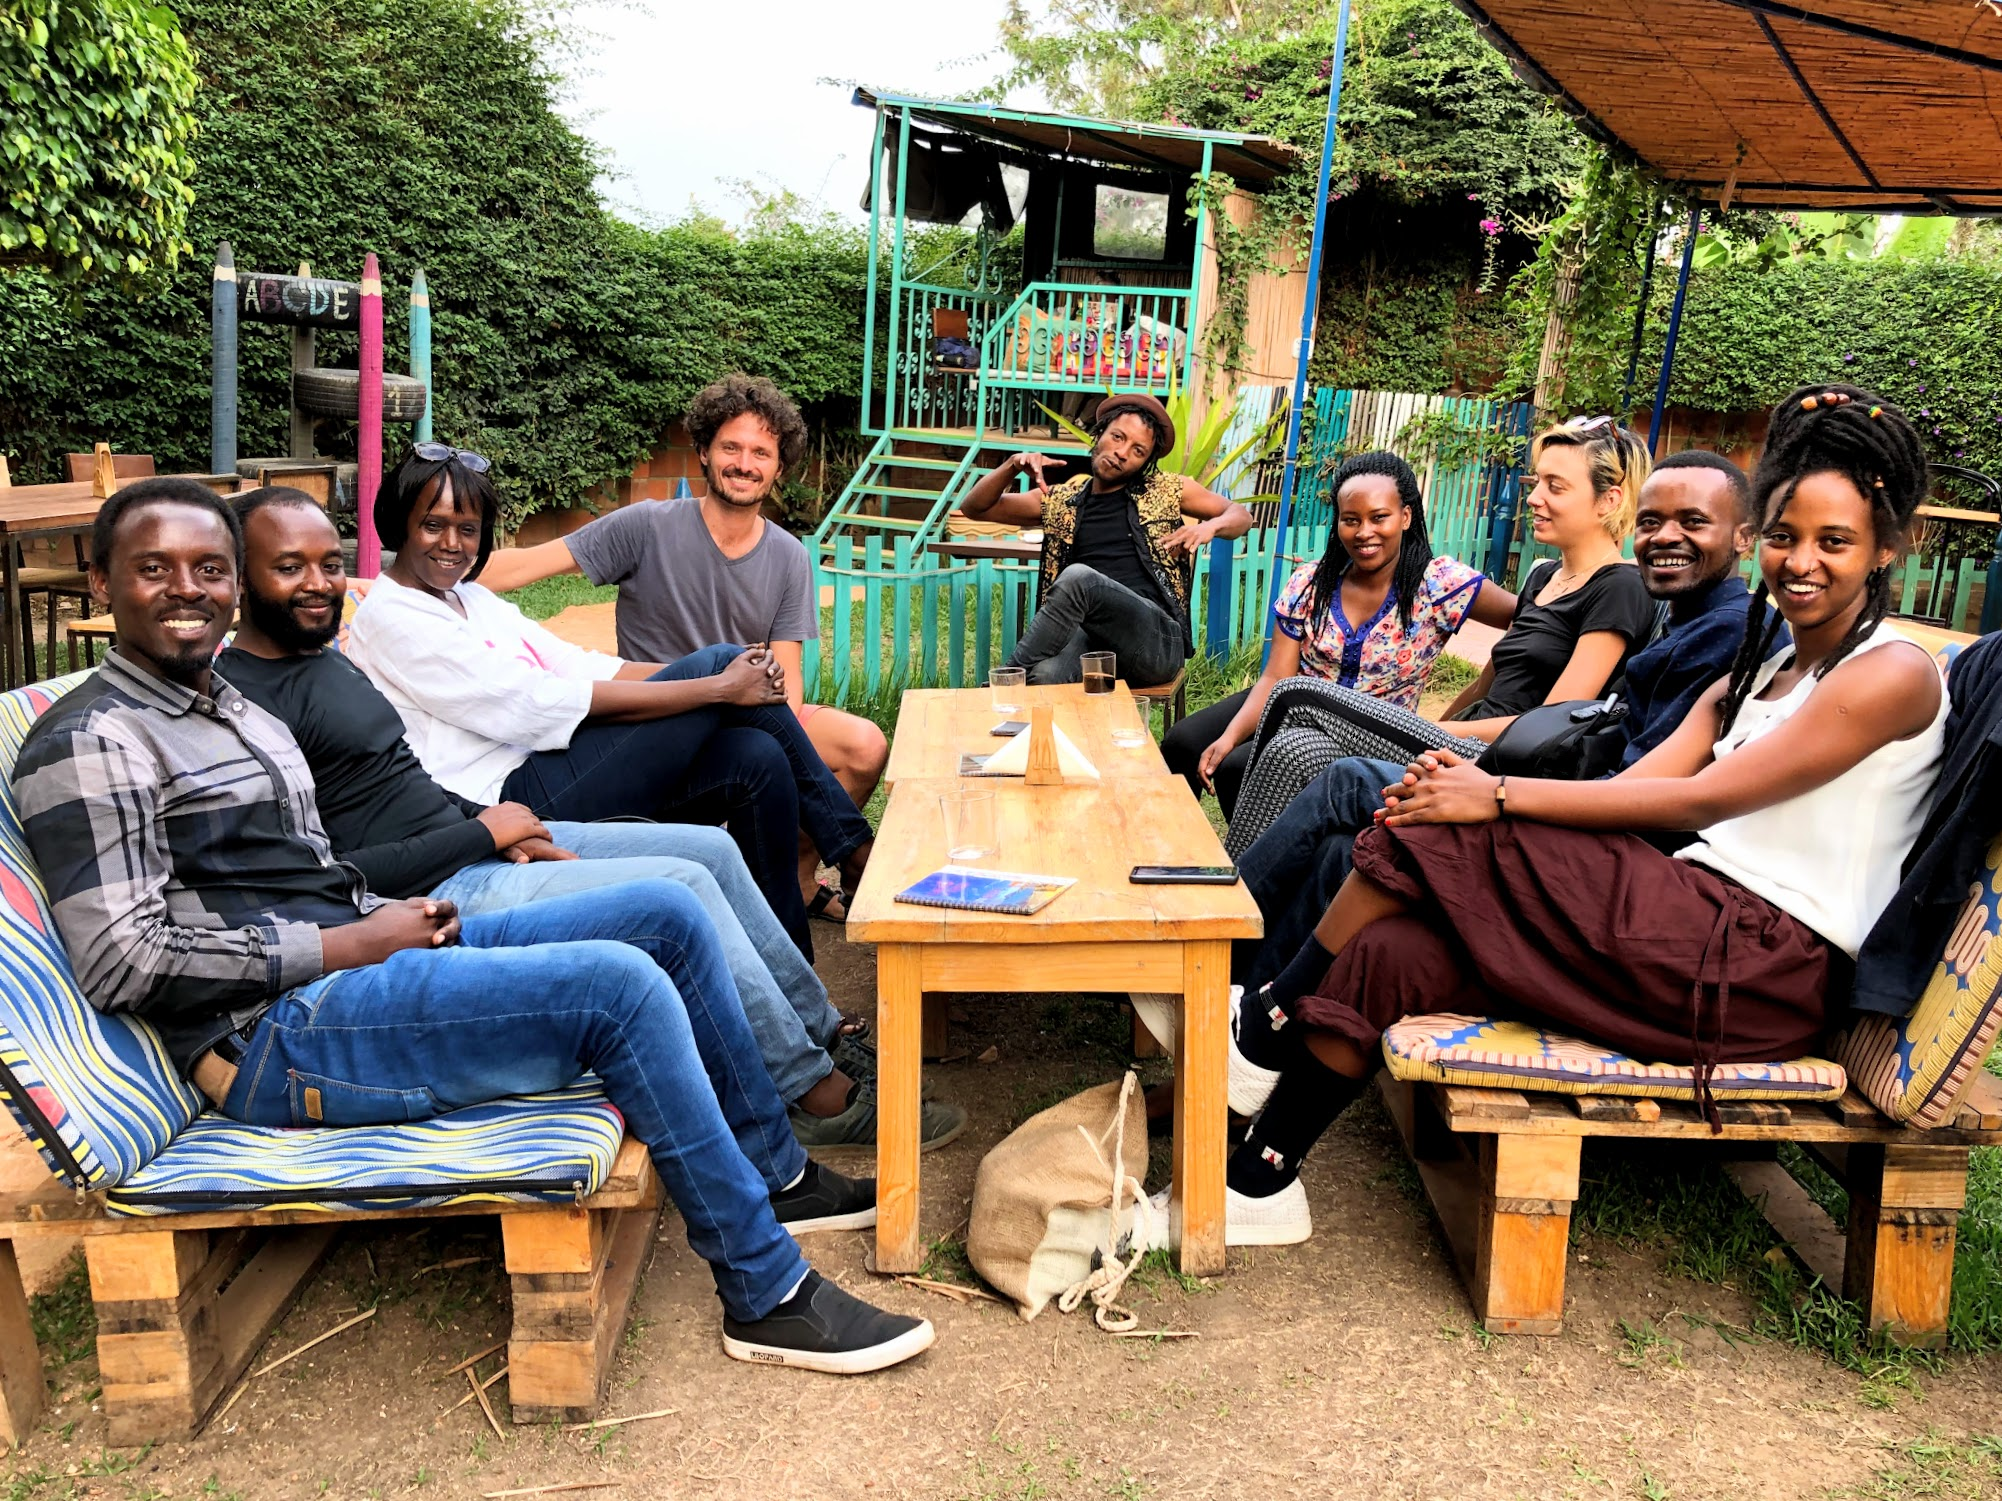 The new members of AZAHAR Foundation Rwanda meeting for the first time! We are so proud to bring together such passionated and inspiring individuals to join this new dream team.